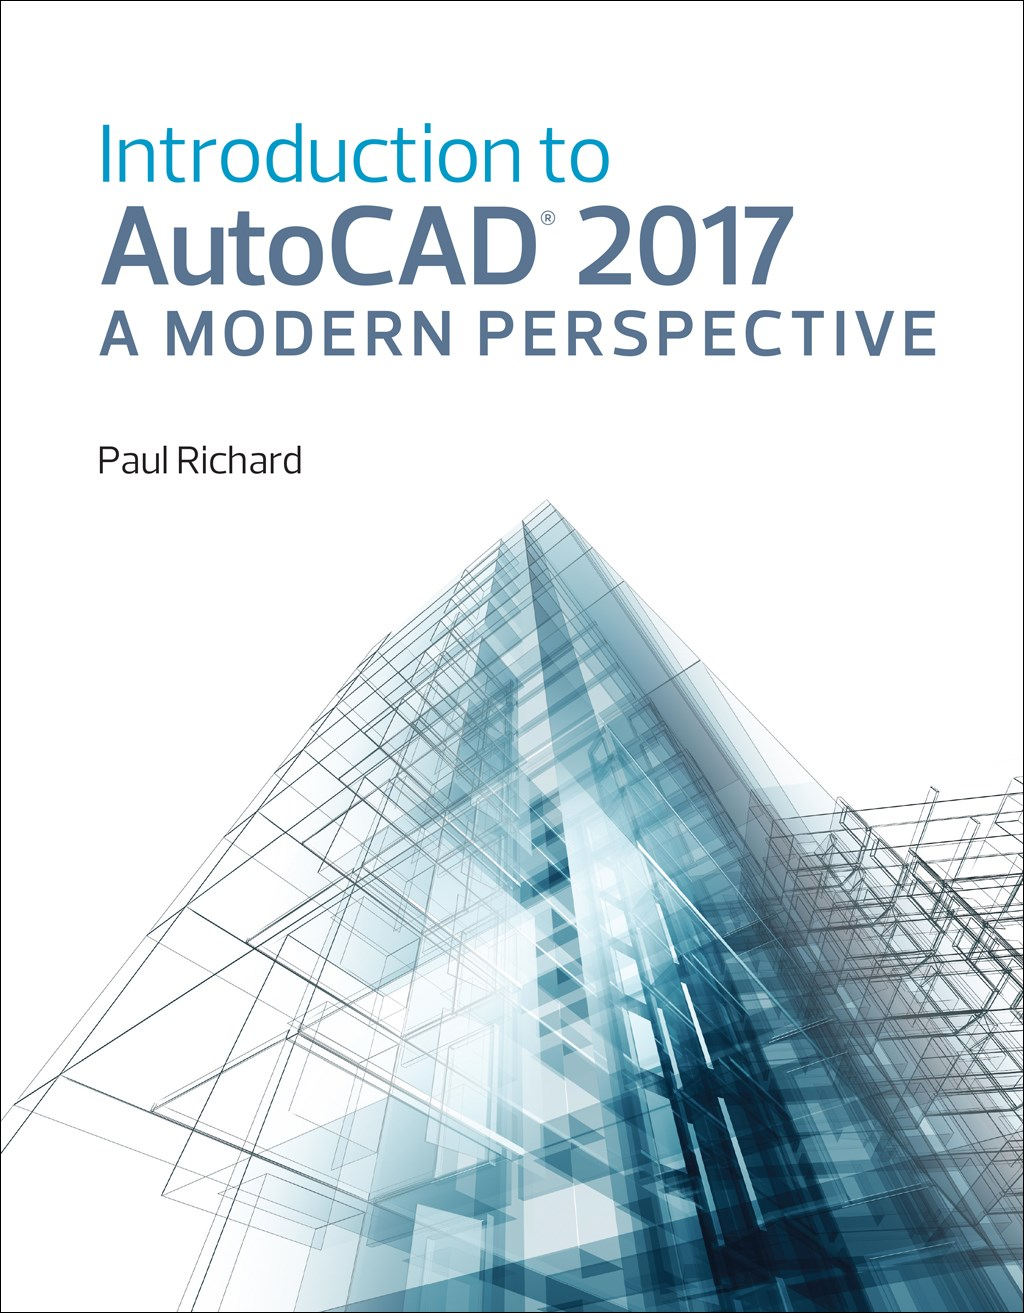 Introduction to AutoCAD 2017: A Modern Perspective